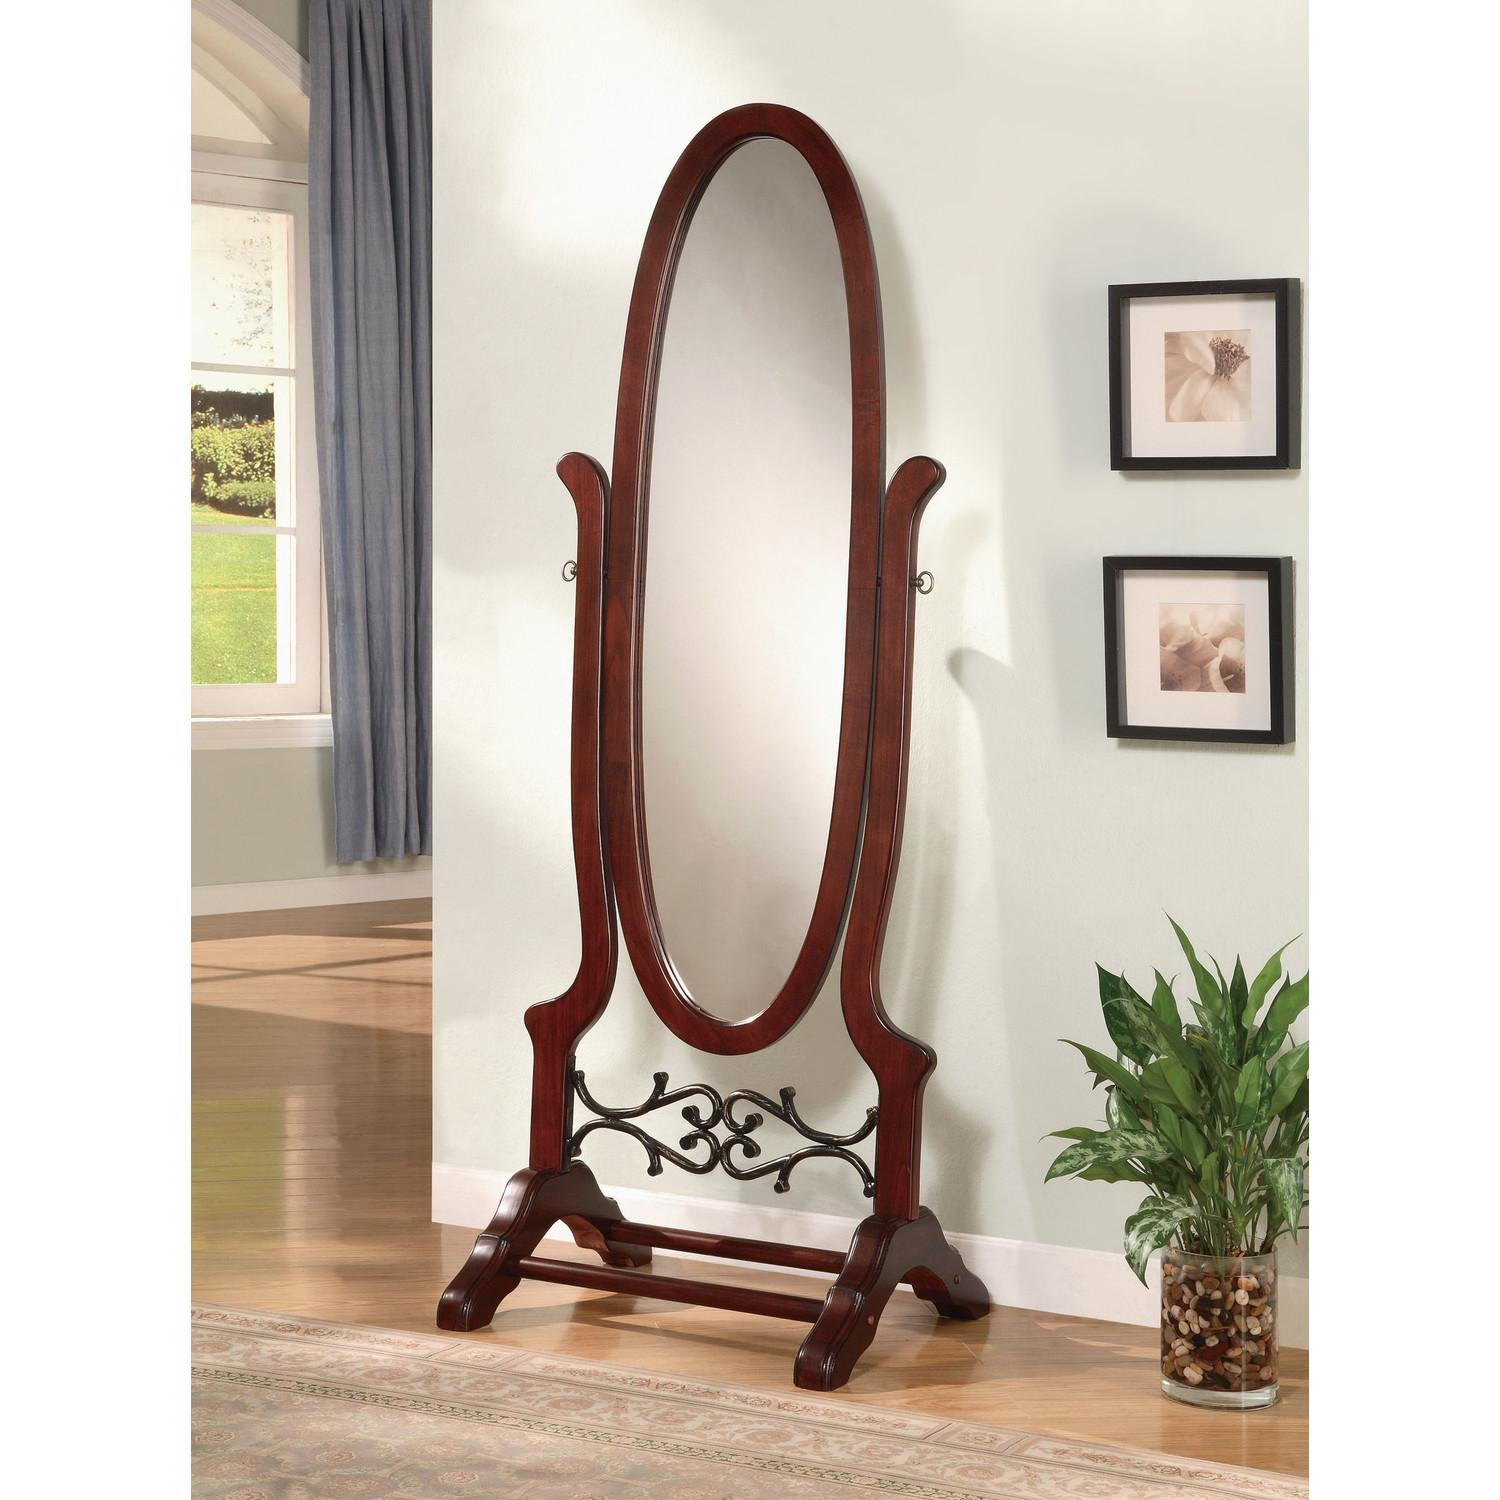 Decorating: Amusing Cheval Mirror For Home Furniture Ideas — Mtyp Intended For Full Length Cheval Mirror (Image 8 of 20)